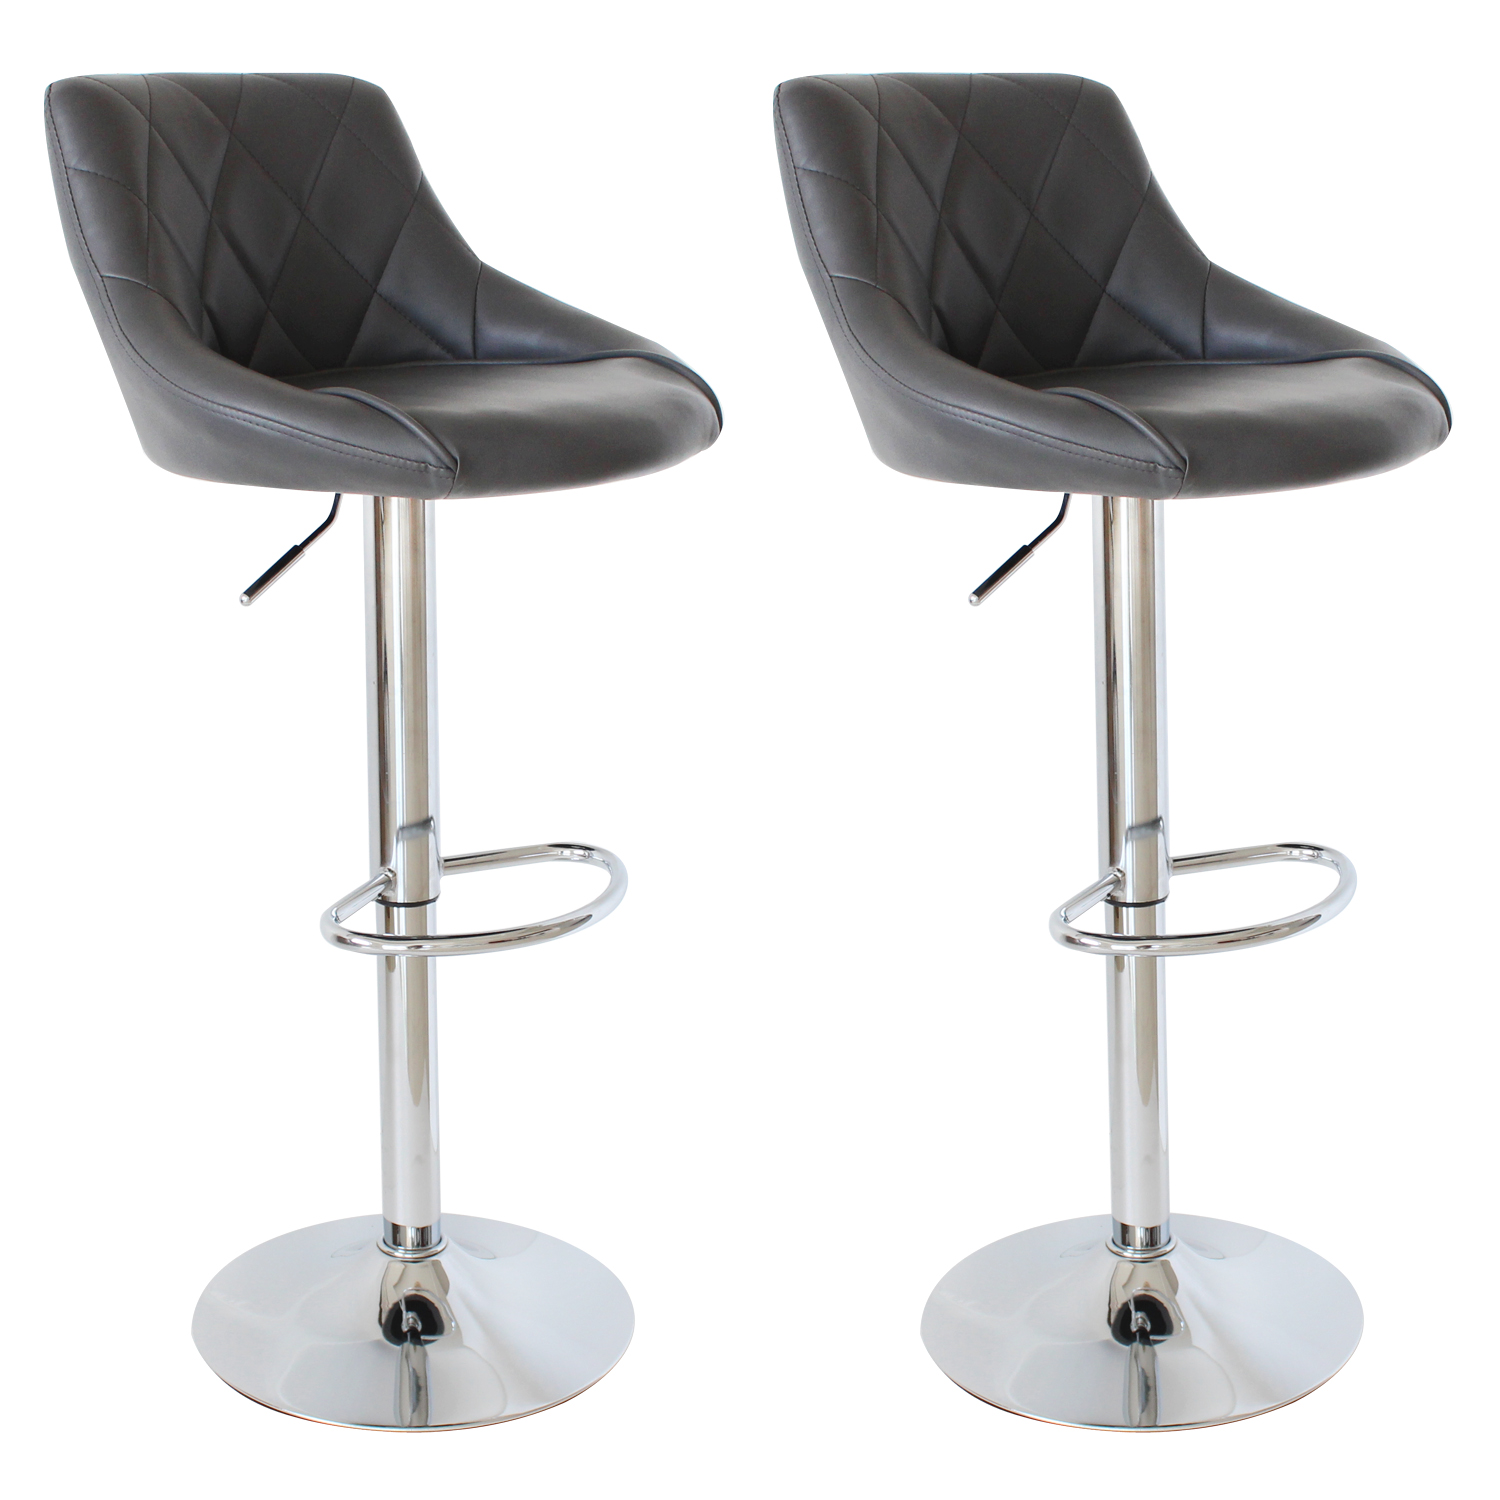 Bar Stools Faux Leather Set Of 2 Kitchen Breakfast Bar Stool Stools Chair U009